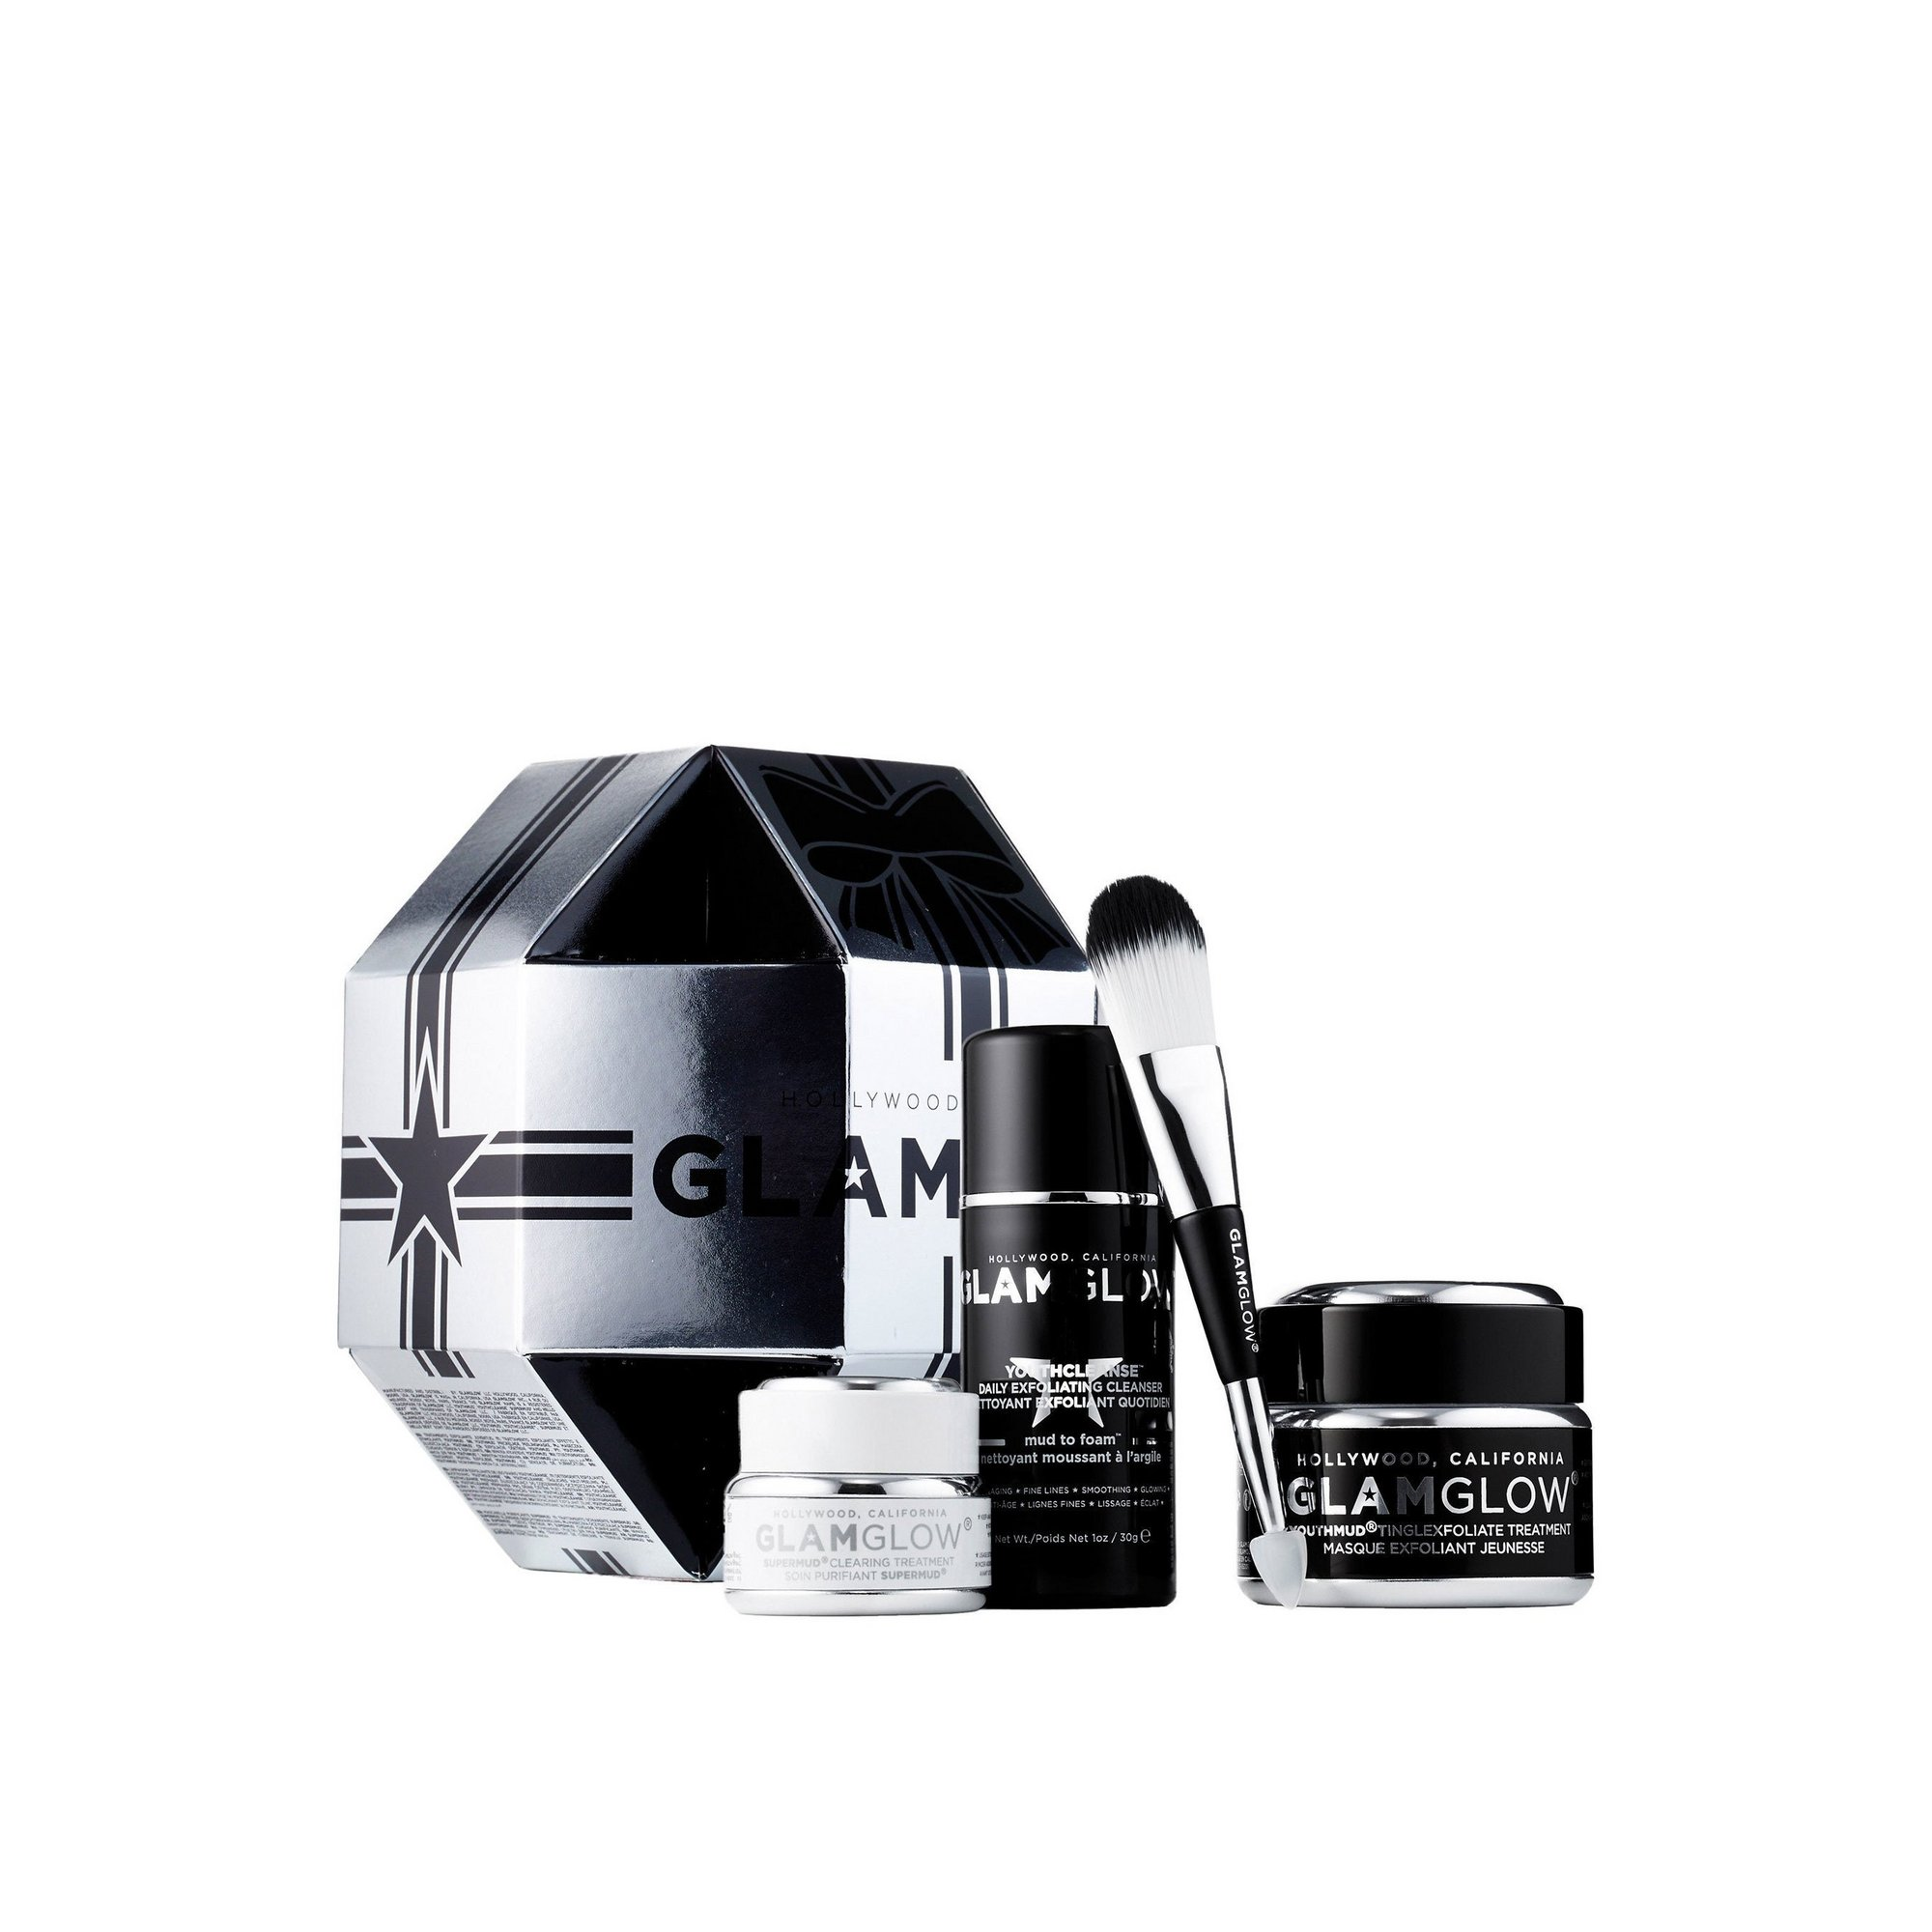 Image of GlamGlow Ultimate Anti-Ageing Set